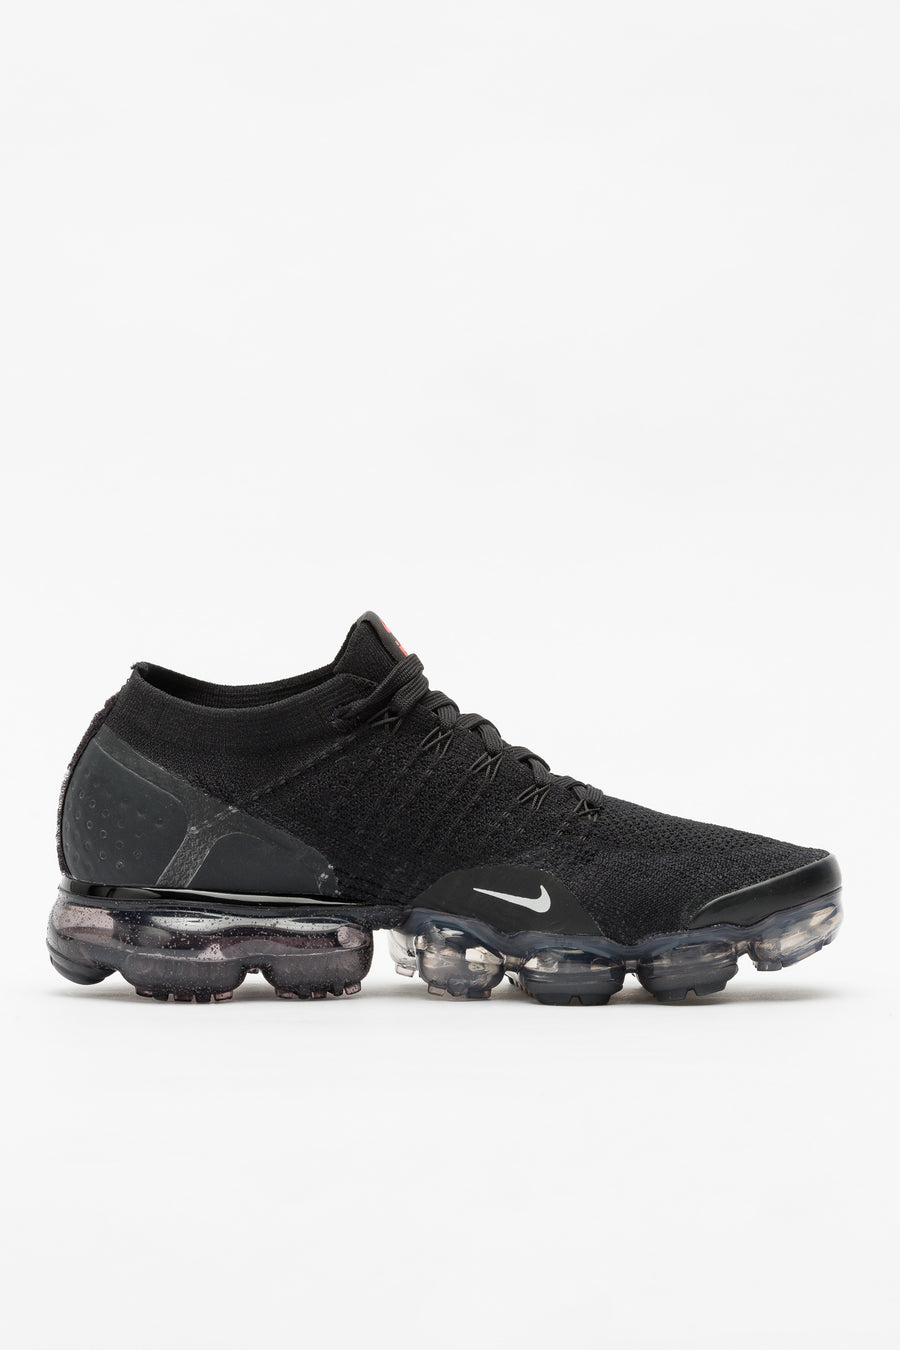 performance sportswear high quality outlet on sale Air VaporMax FlyKnit Gaiter ISPA in Metallic Silver/Black